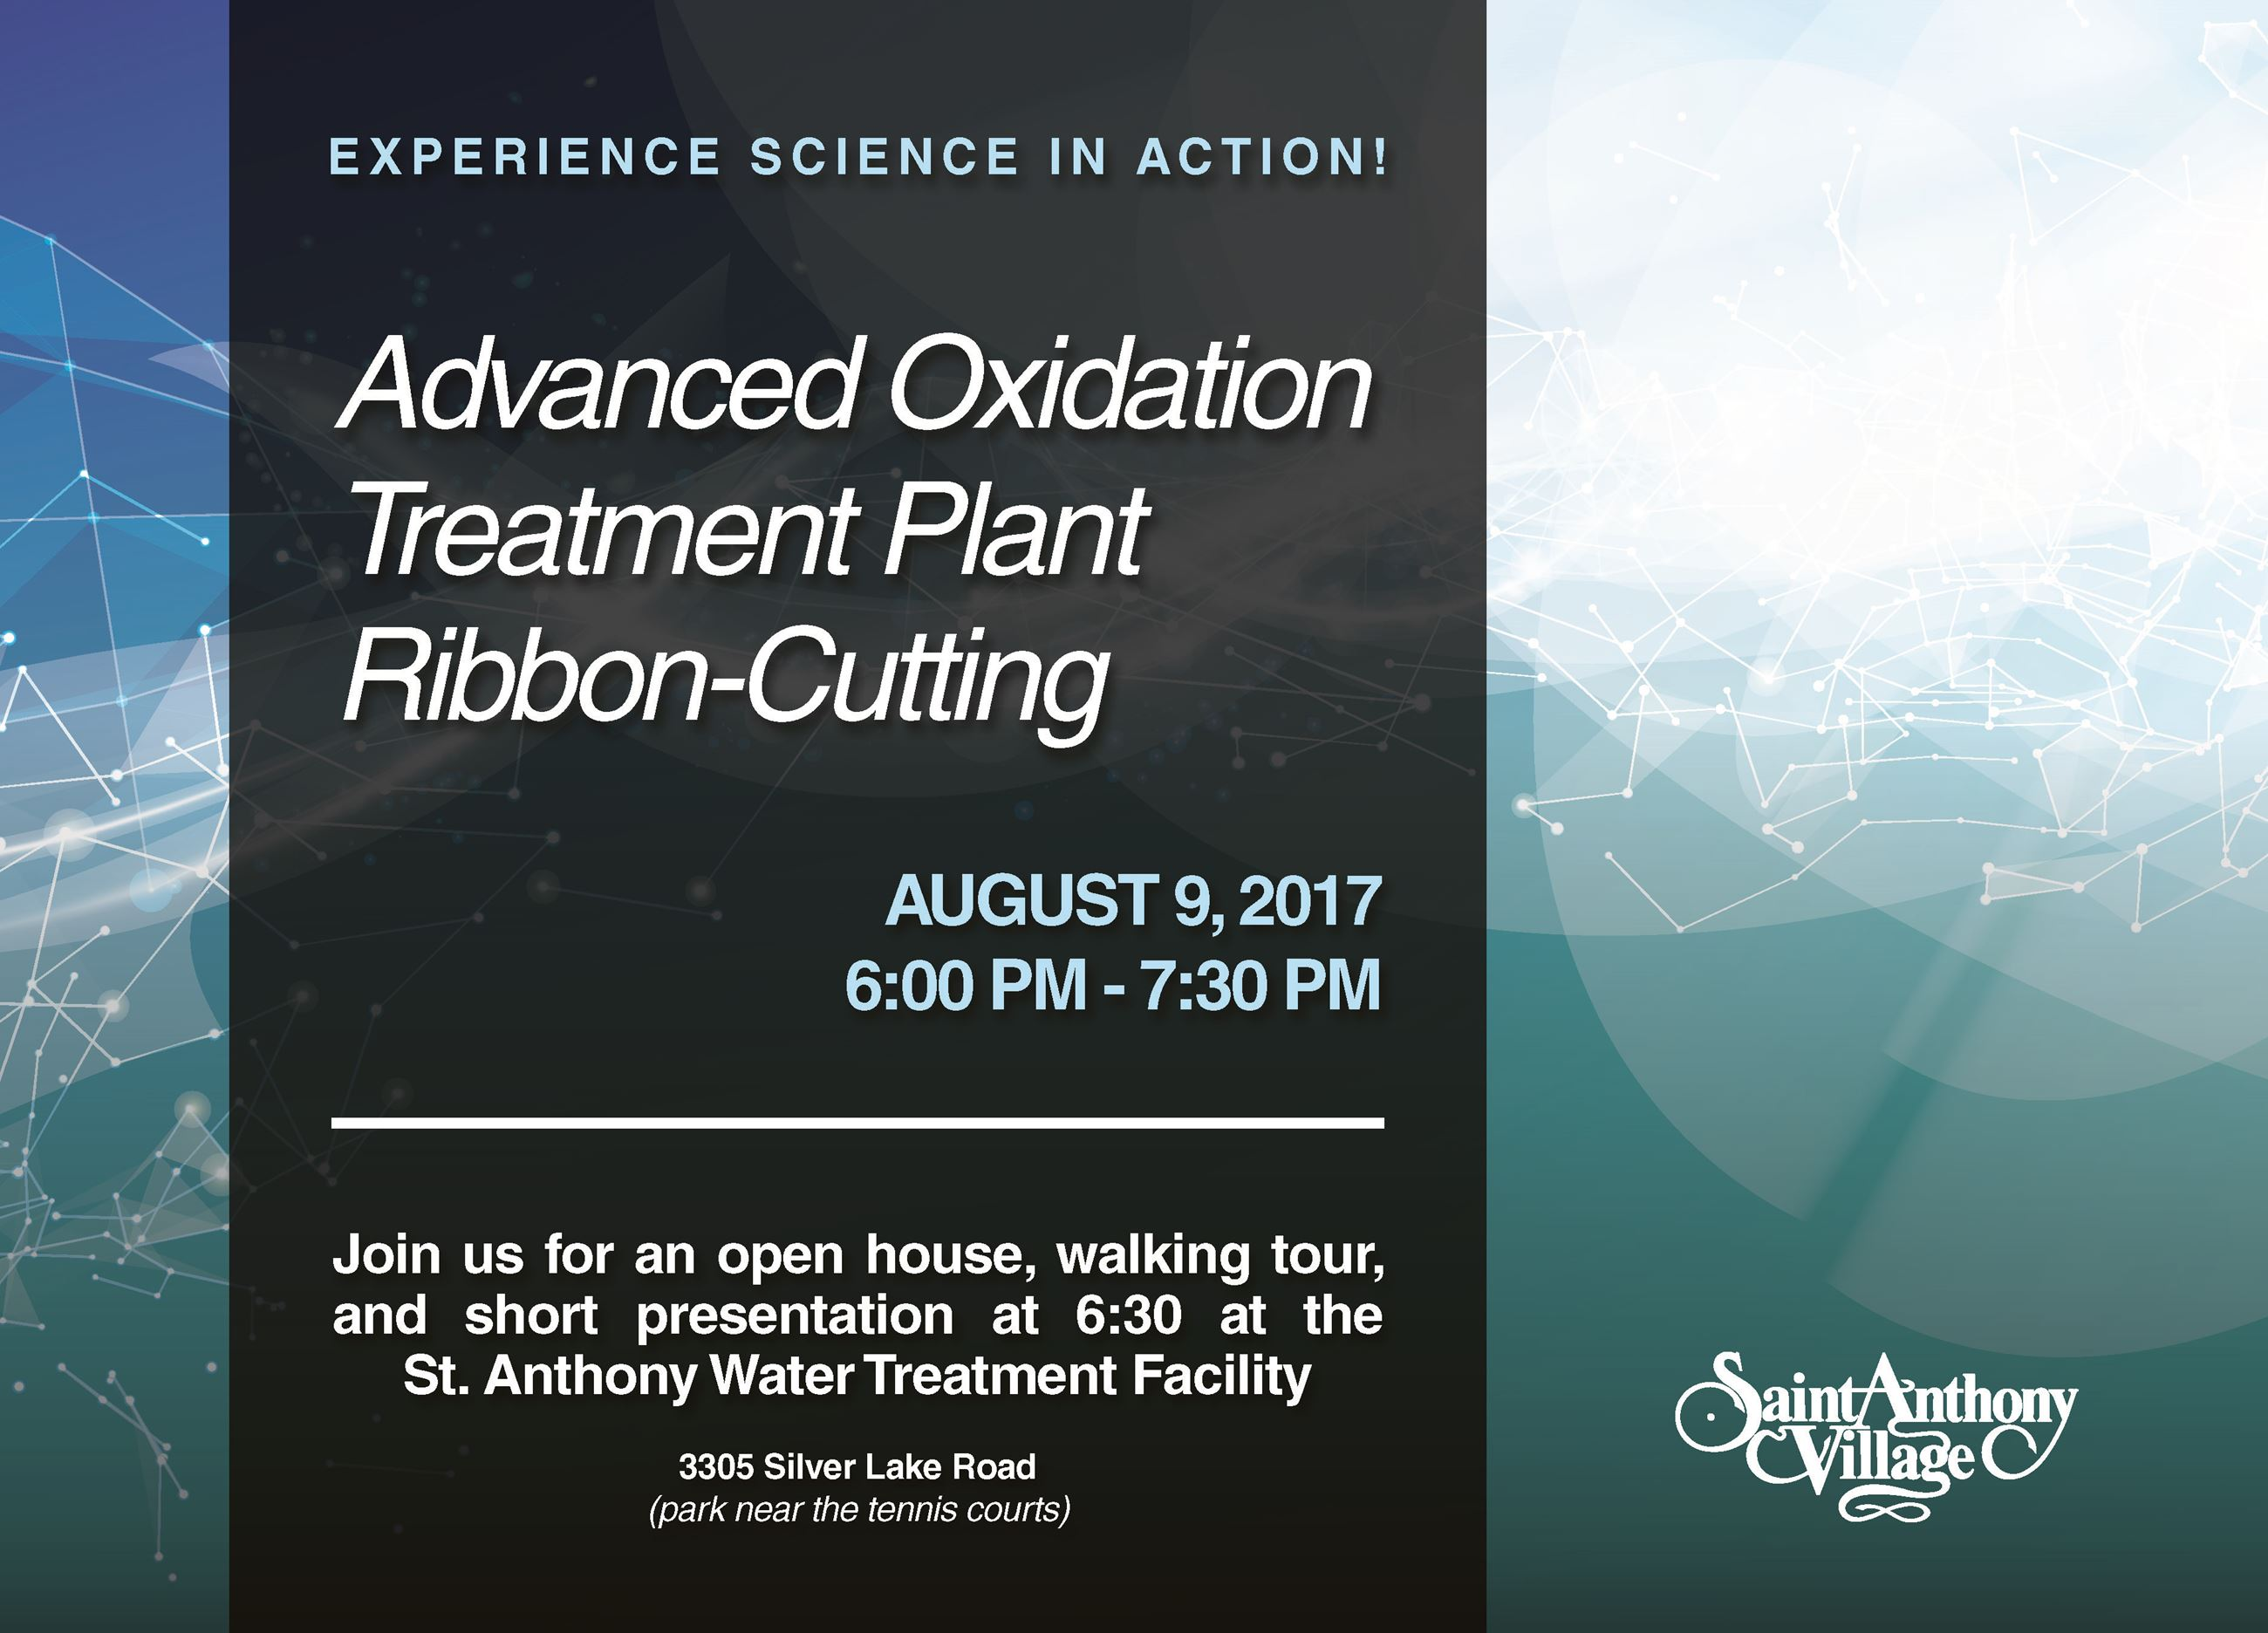 Advanced Oxidation Process  Water Treatment Plant Ribbon-Cutting invite